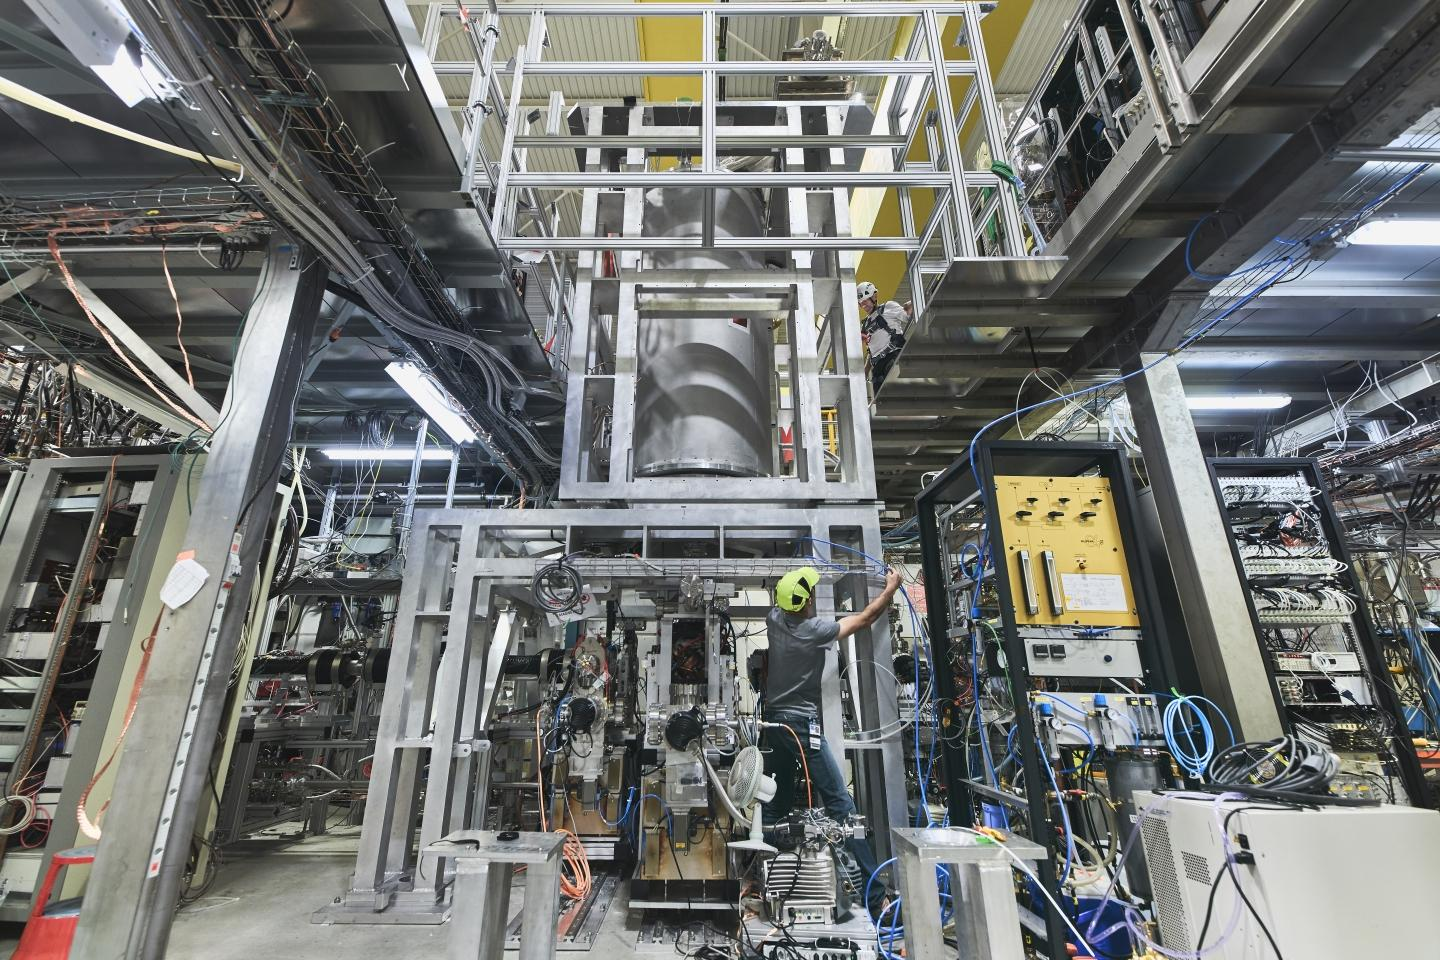 The ALPHA-g experiment being set up at CERN, which will drop antimatter to see how gravity affects it